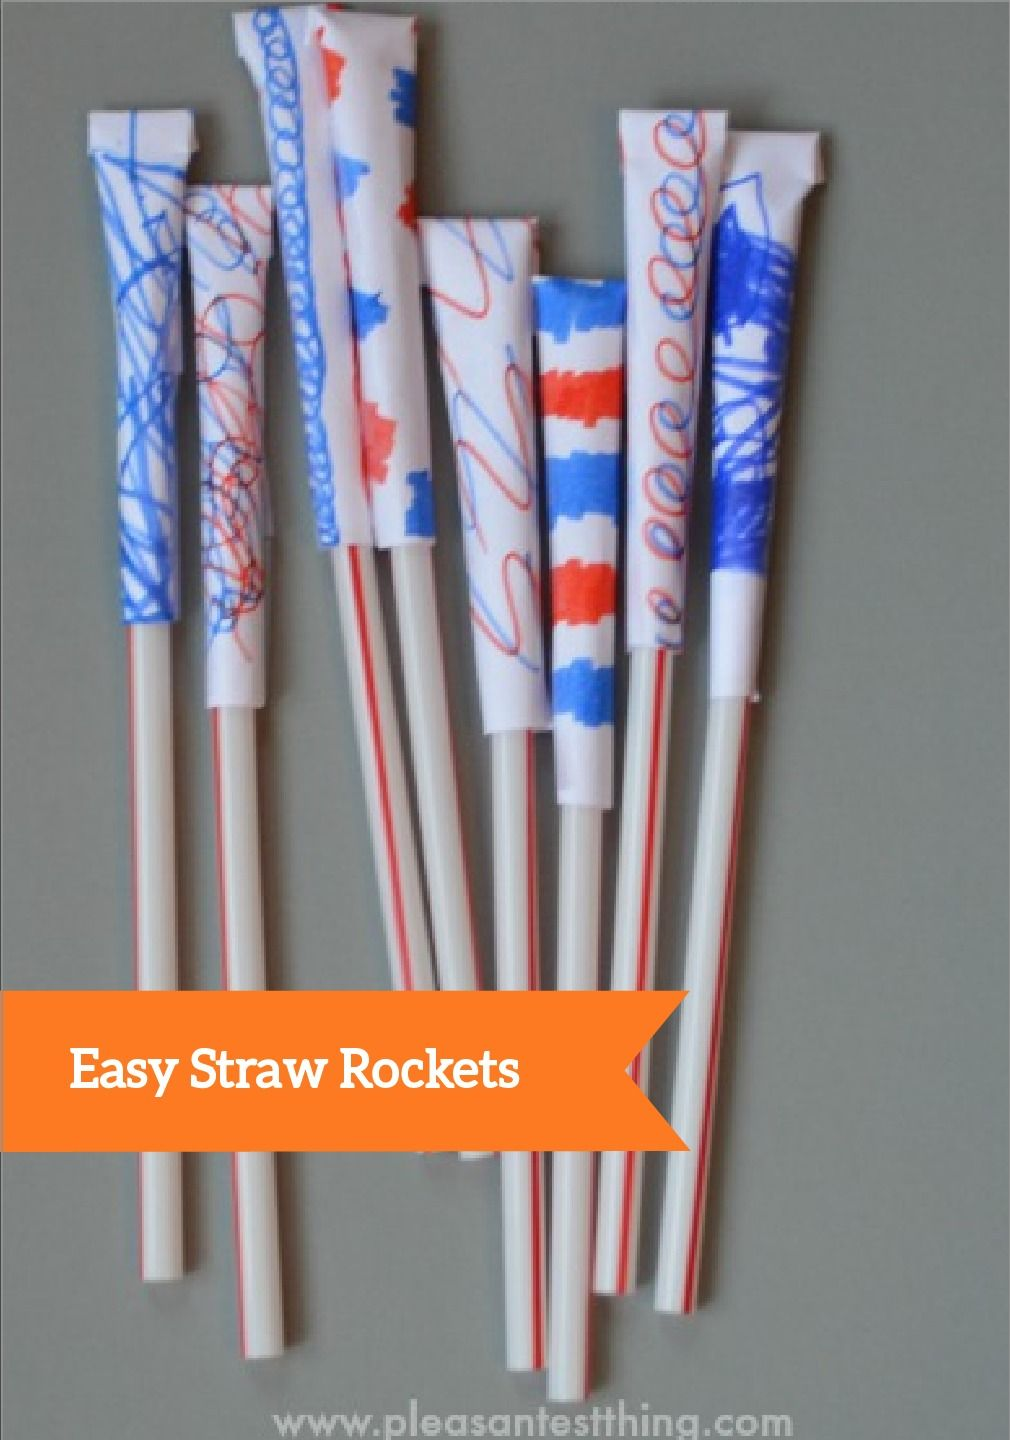 This fun, easy project is perfect for kids stuck inside on a rainy day. They will love launching these straw rockets across the house—and you will love that nothing gets damaged!